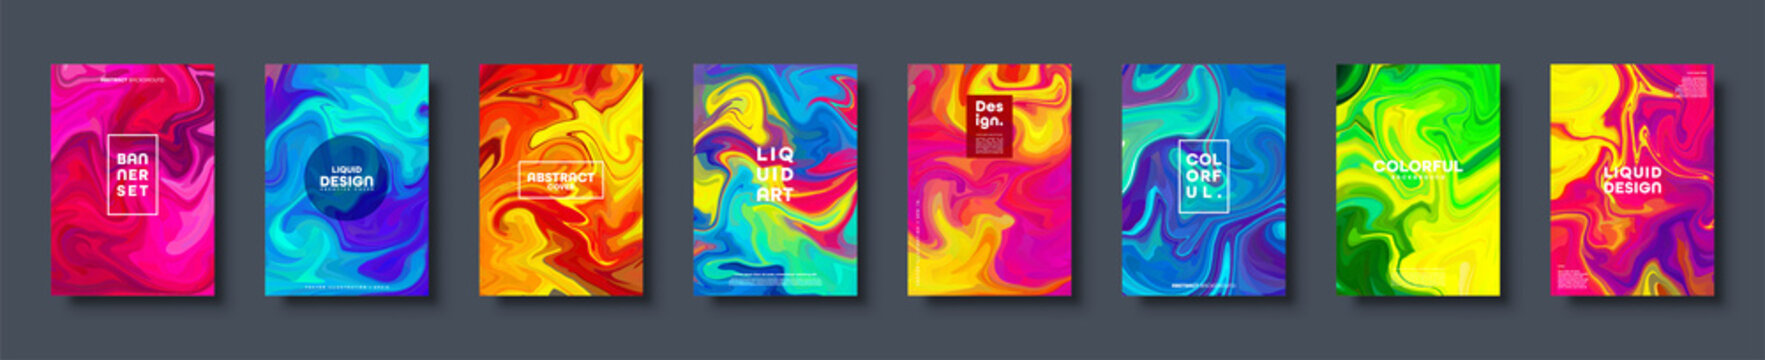 Colorful abstract geometric background. Liquid dynamic gradient waves. Fluid marble texture. Modern covers set. Vector illustration.